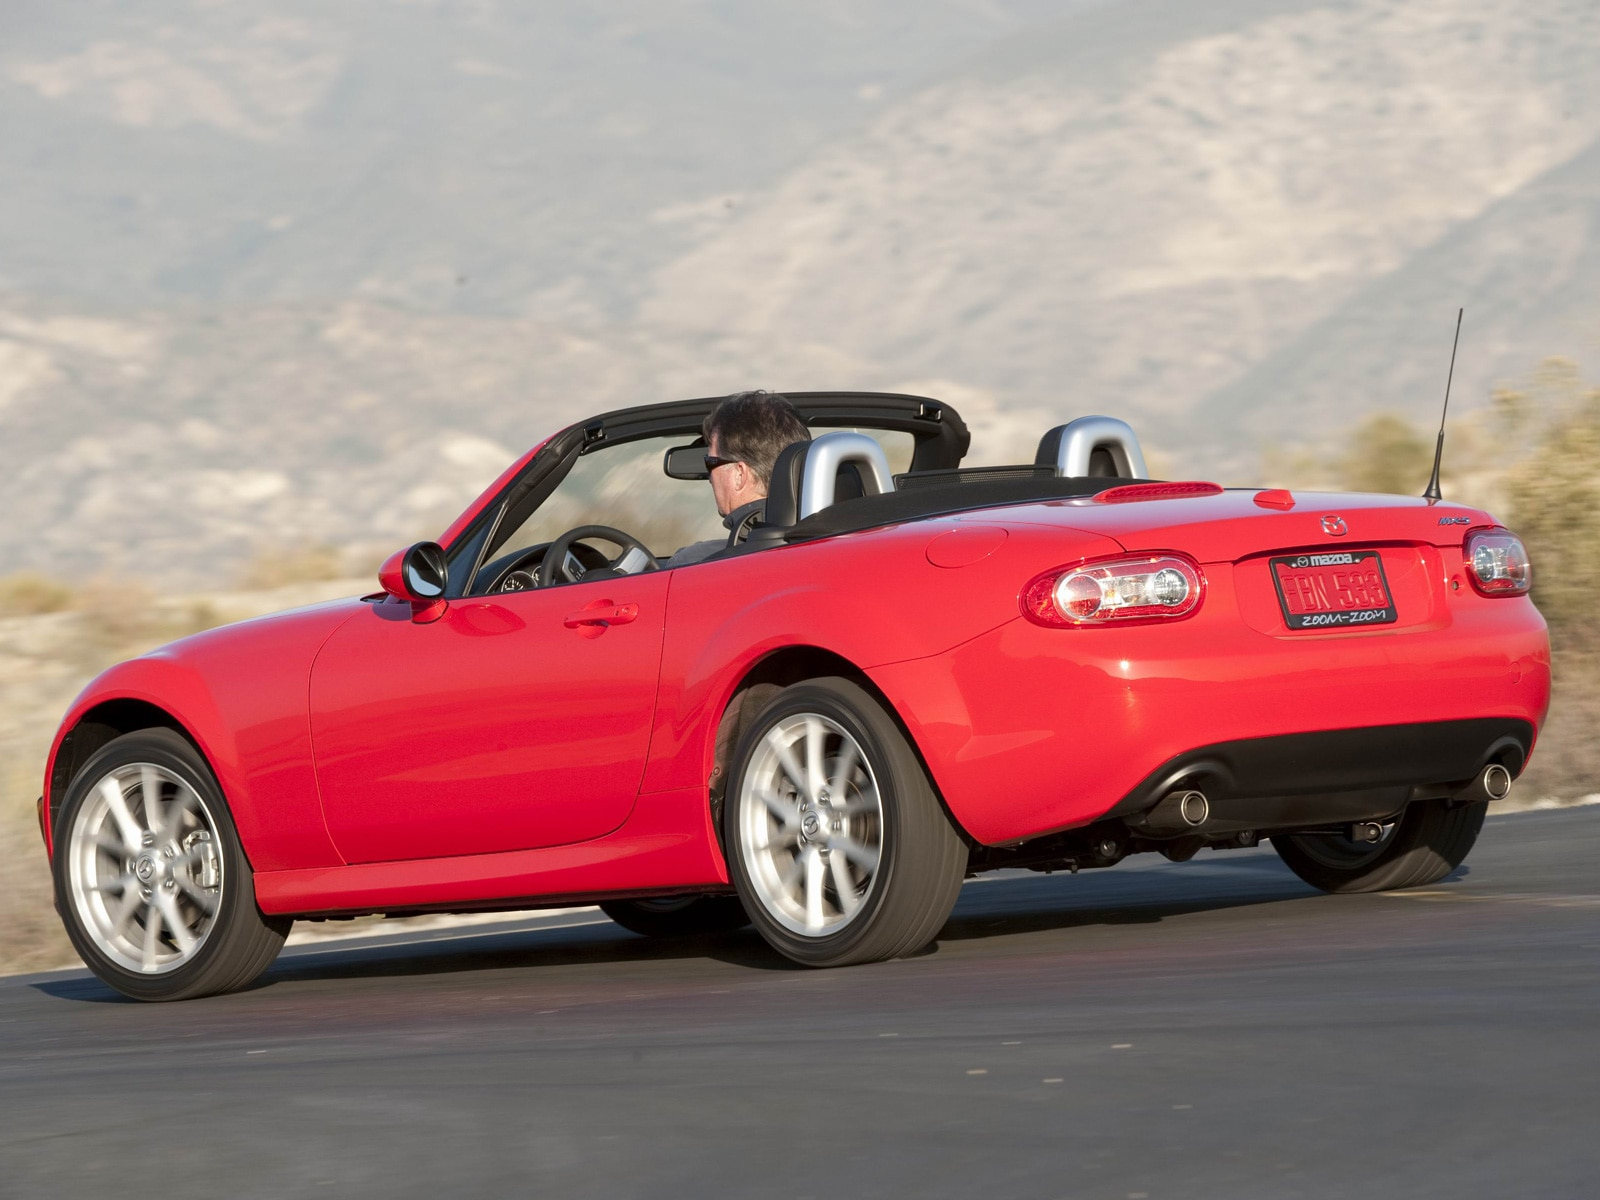 2010 mazda mx 5 miata grand touring mazda convertible. Black Bedroom Furniture Sets. Home Design Ideas